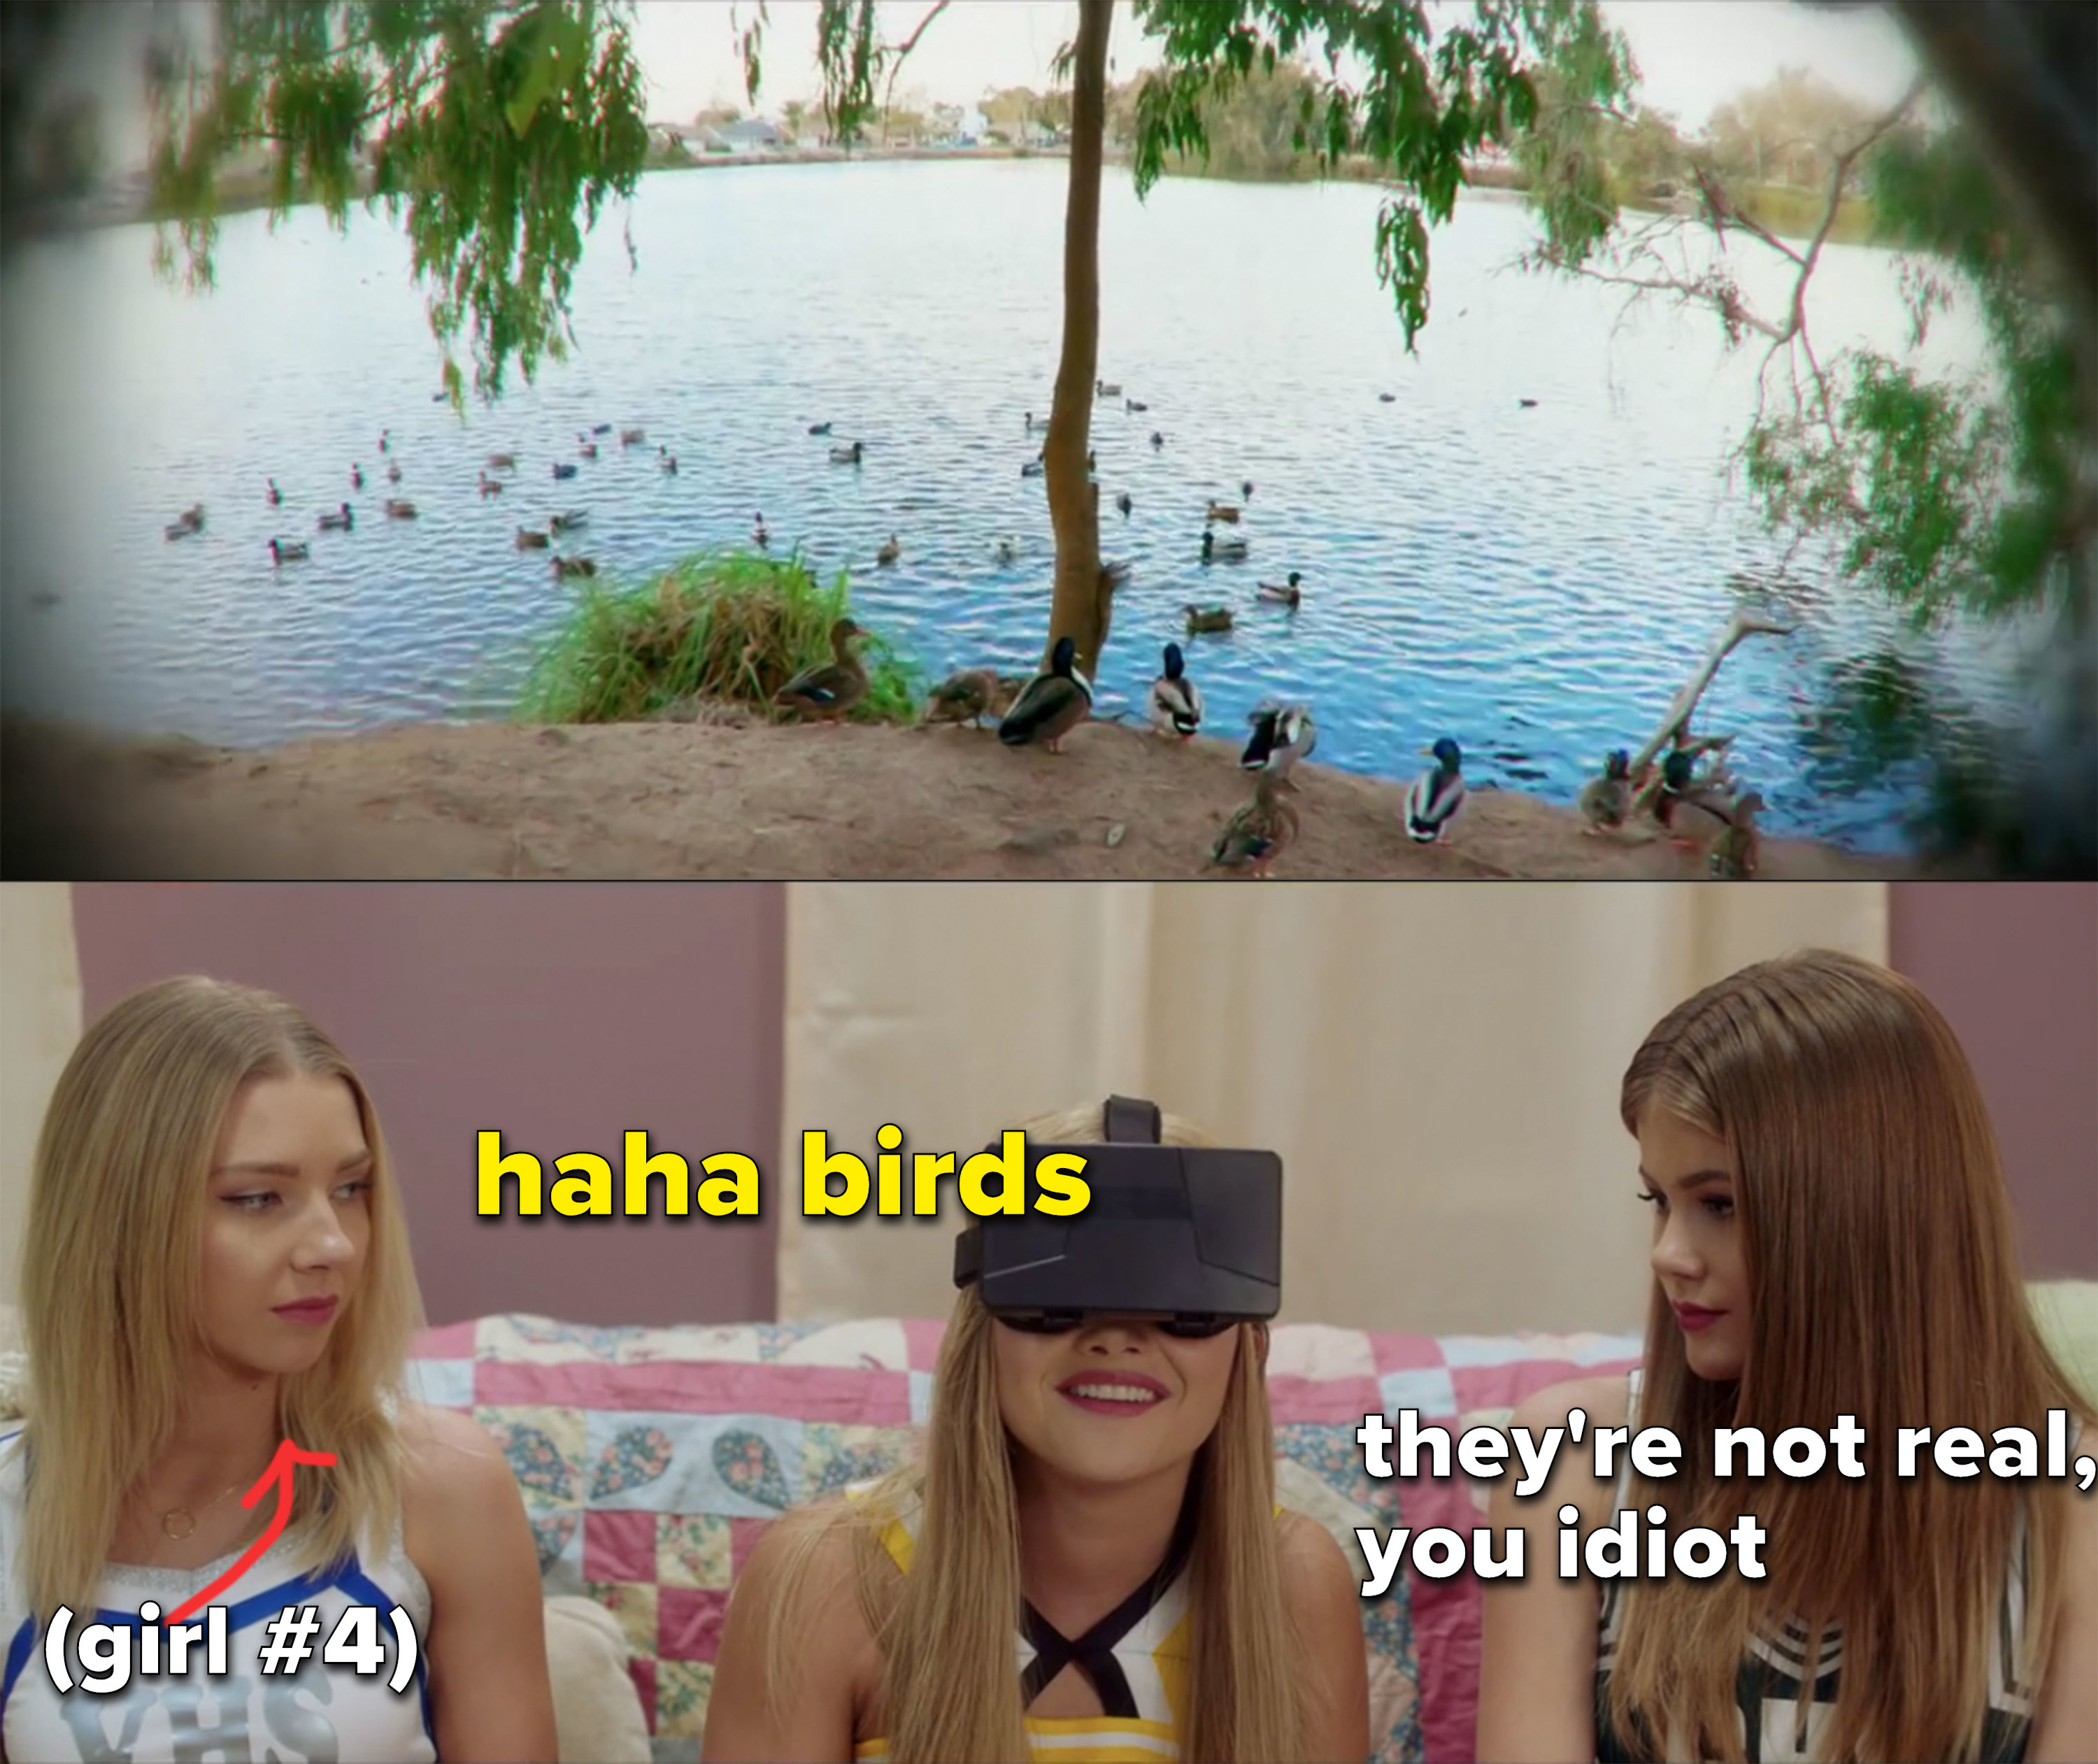 """Chelsea looking through VR googles and laughing, captioned, """"haha birds"""" and mean girl next to her captioned, """"they're not real you idiot"""""""